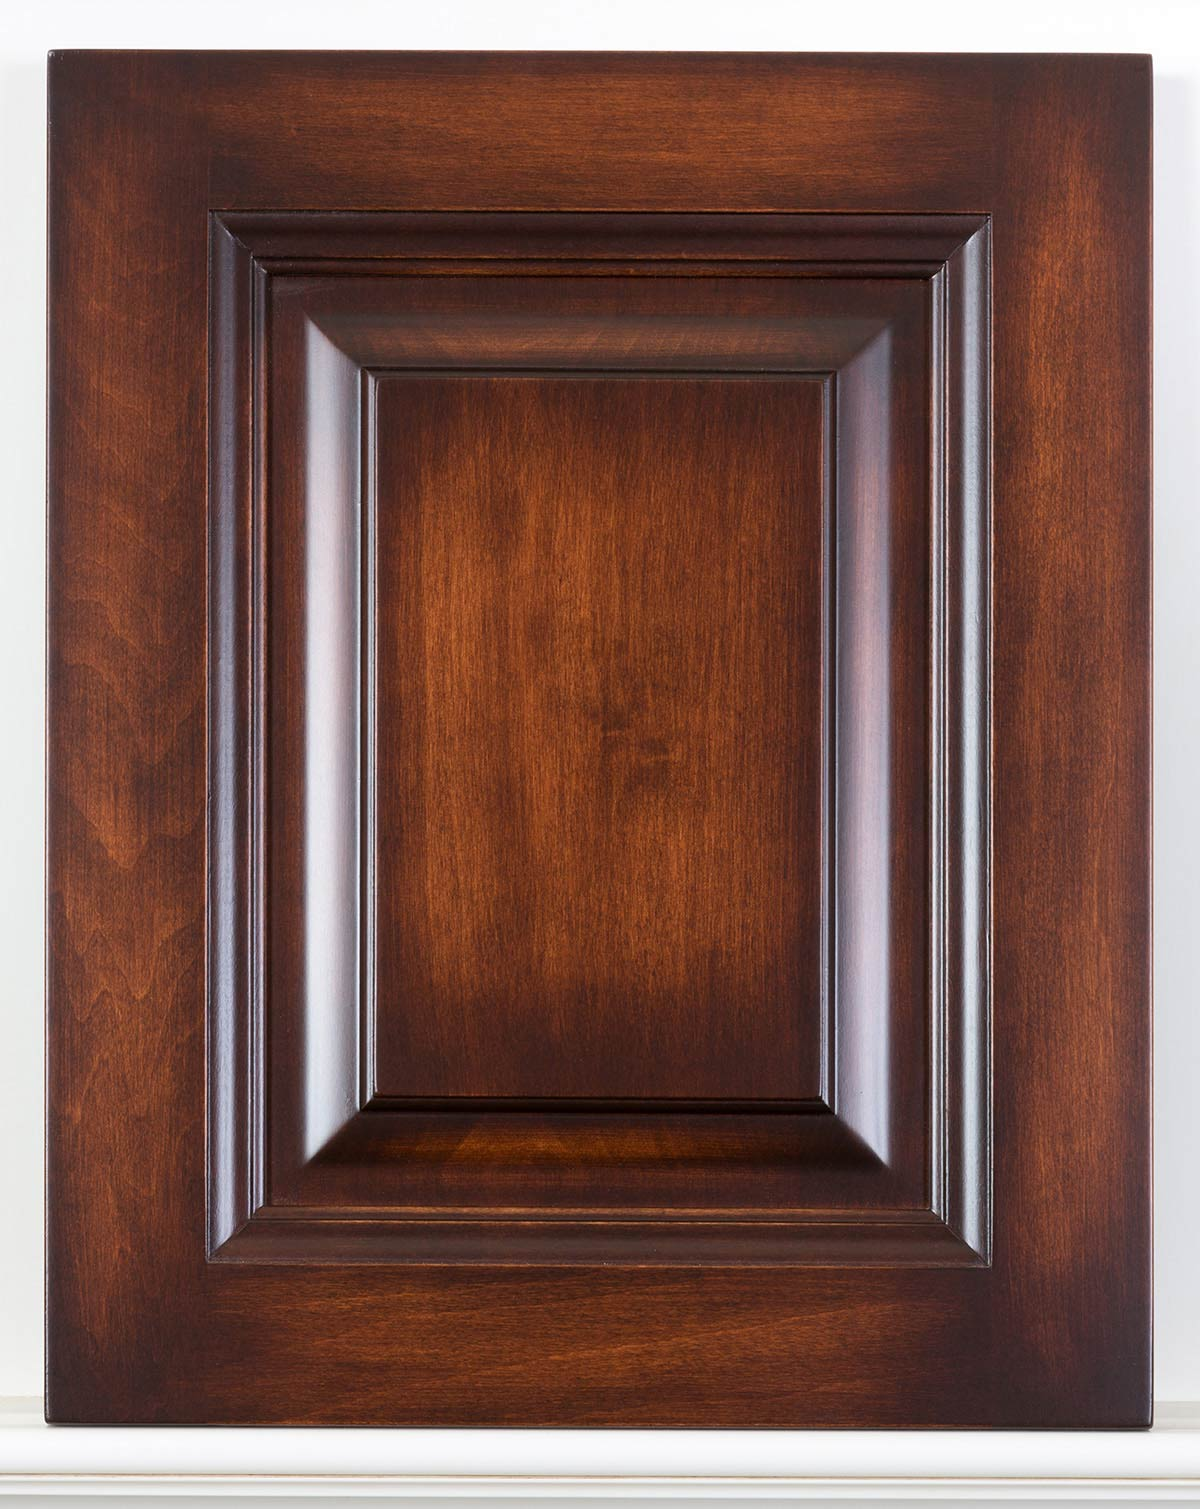 Can You Buy Just Cabinet Doors Where Can I Buy Just Cabinet Doors Where Can I Buy Just Cabinet